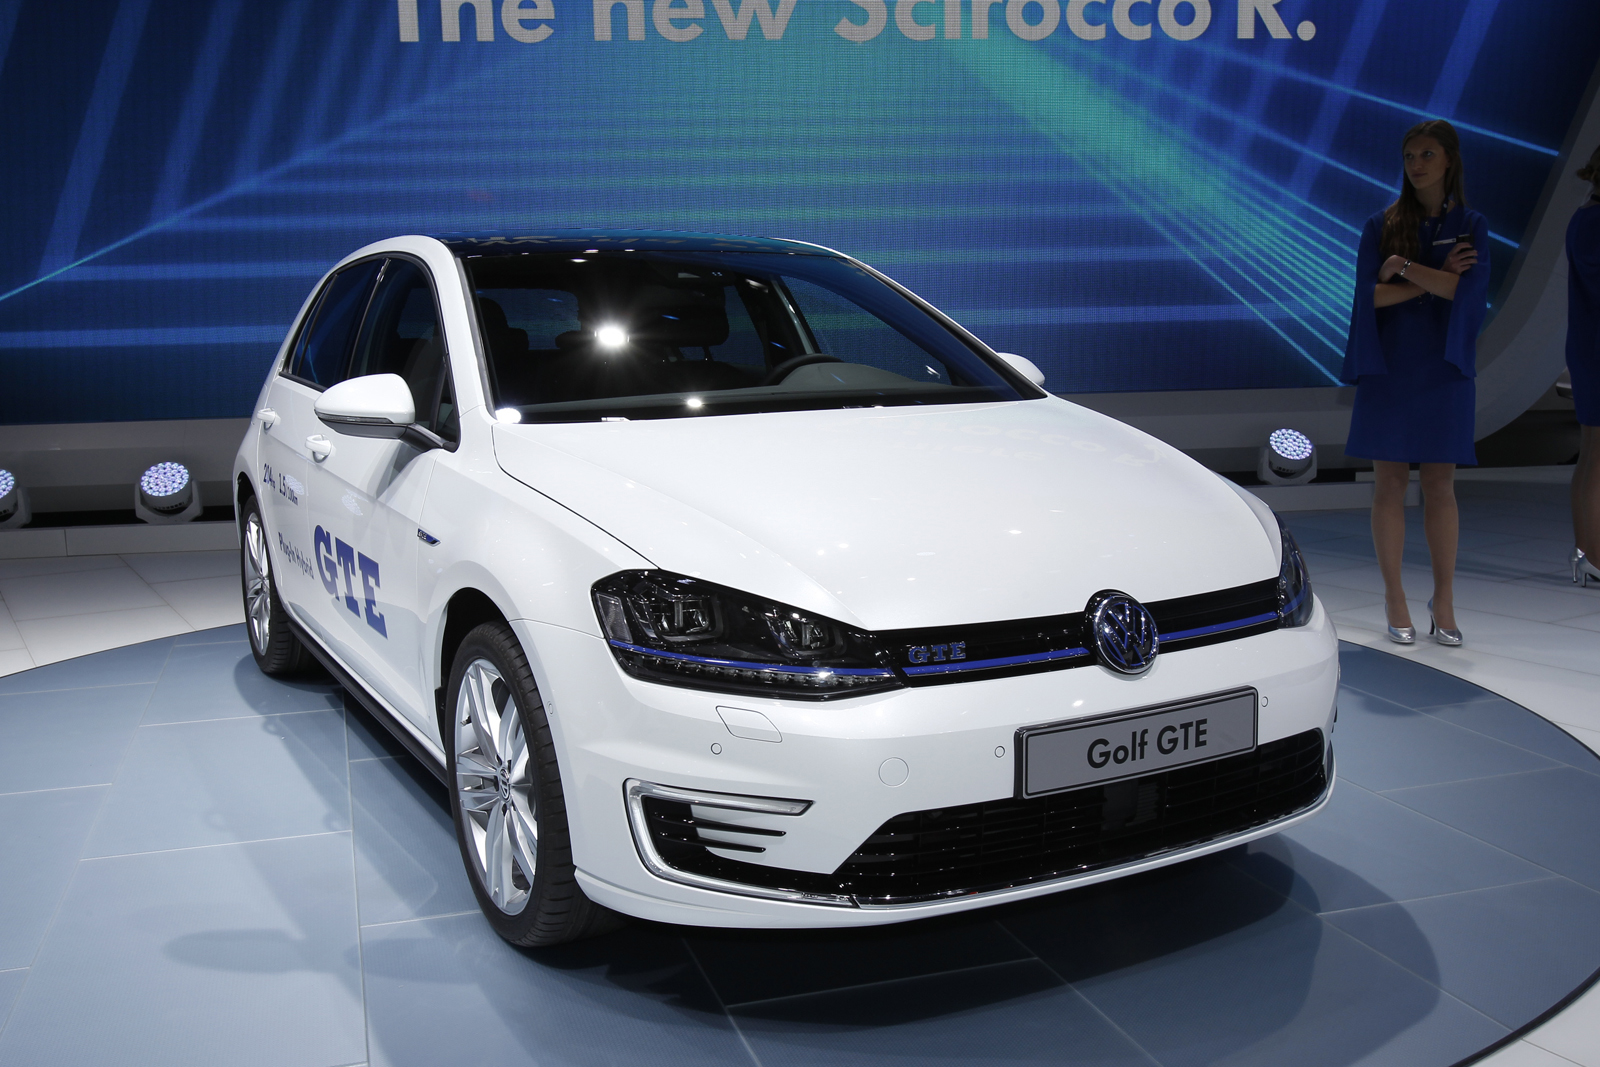 hot electric volkswagen golf gte revealed autocar. Black Bedroom Furniture Sets. Home Design Ideas